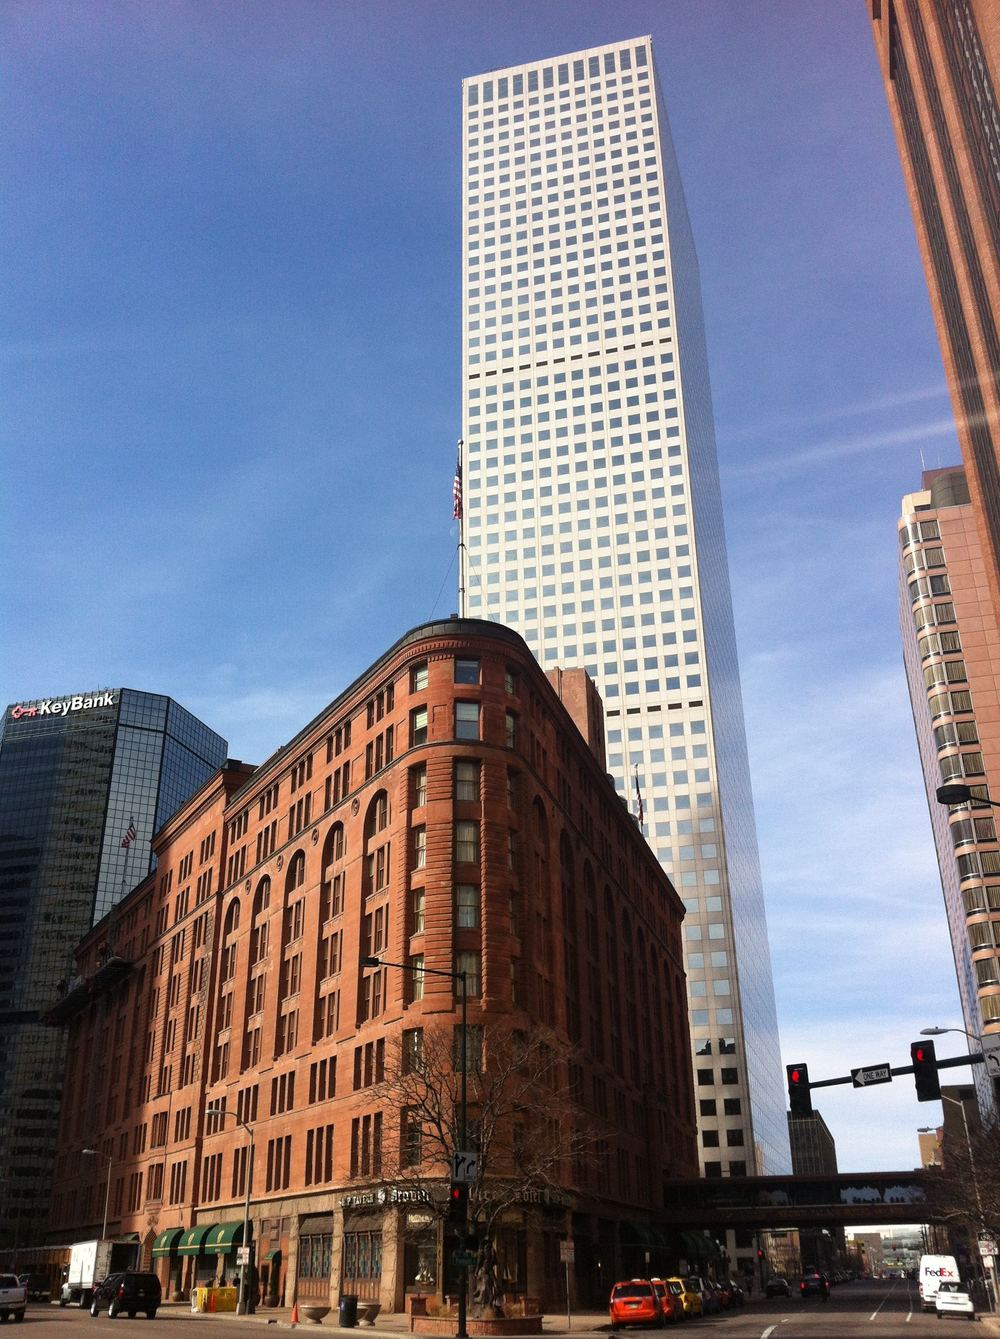 Denver has a healthy mix of old and new architecture.